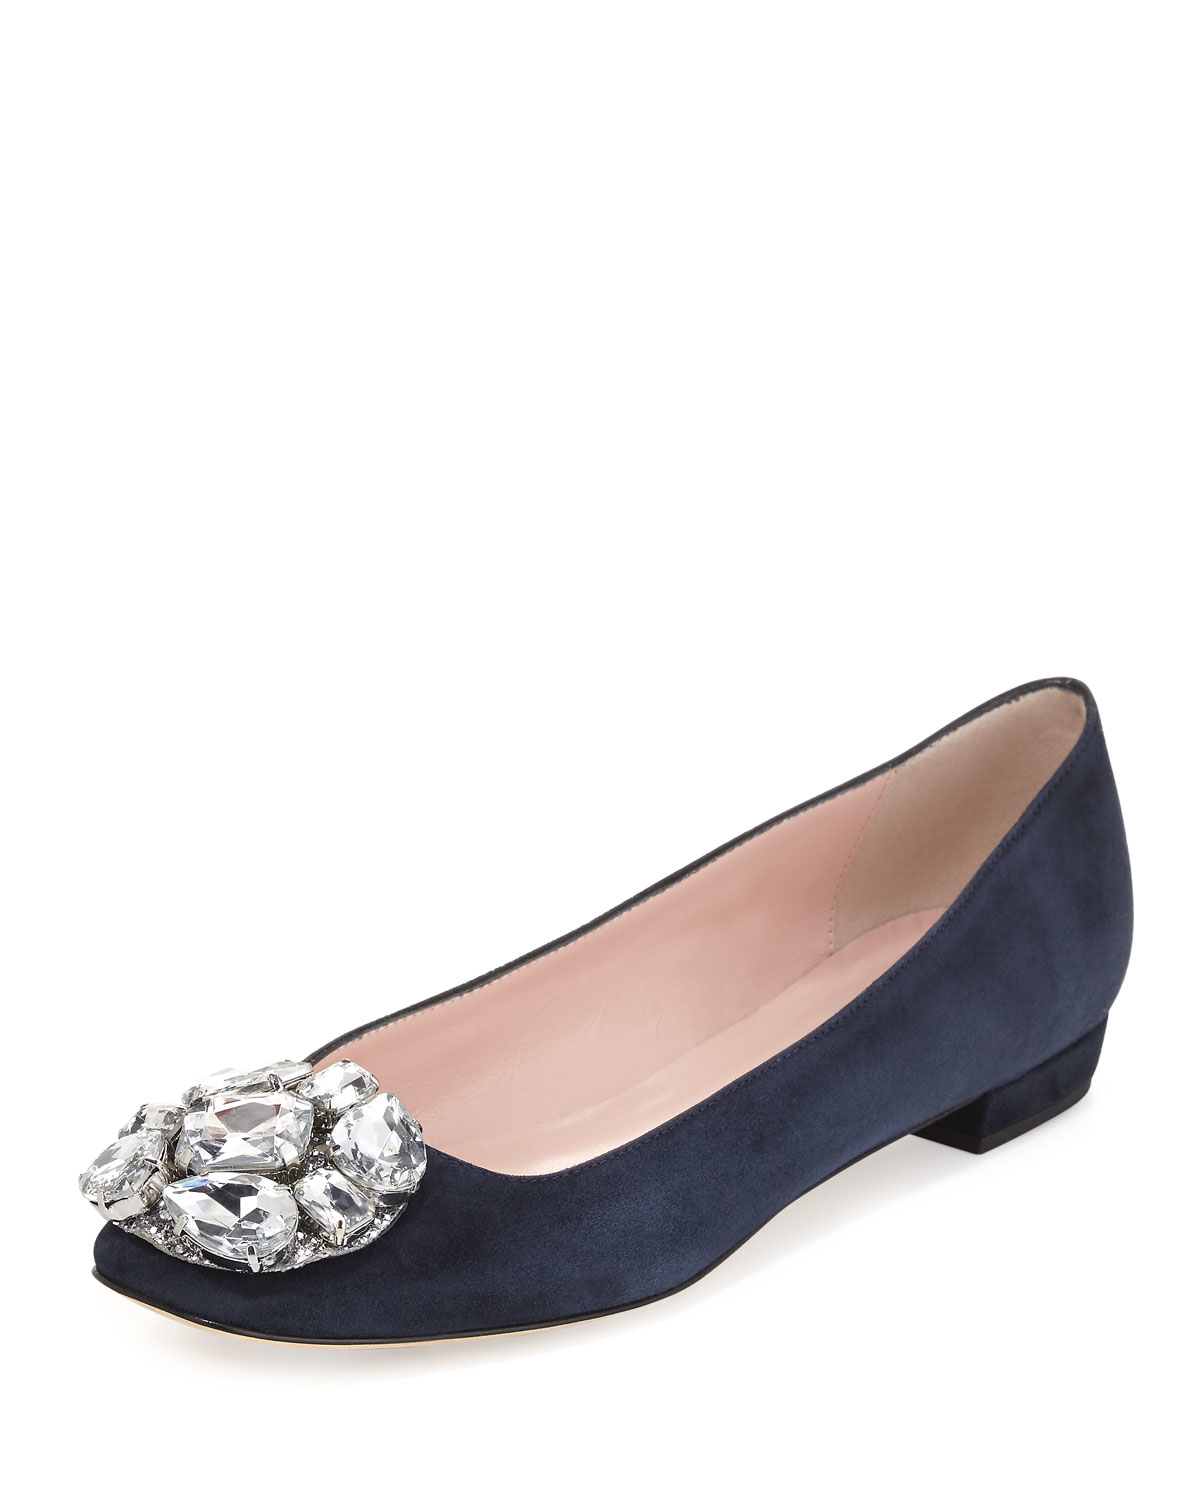 best sale cheap online cheap wiki Kate Spade New York Satin Square-Toe Flats free shipping order cheap sale with paypal discount wholesale price 6gkXTMsu